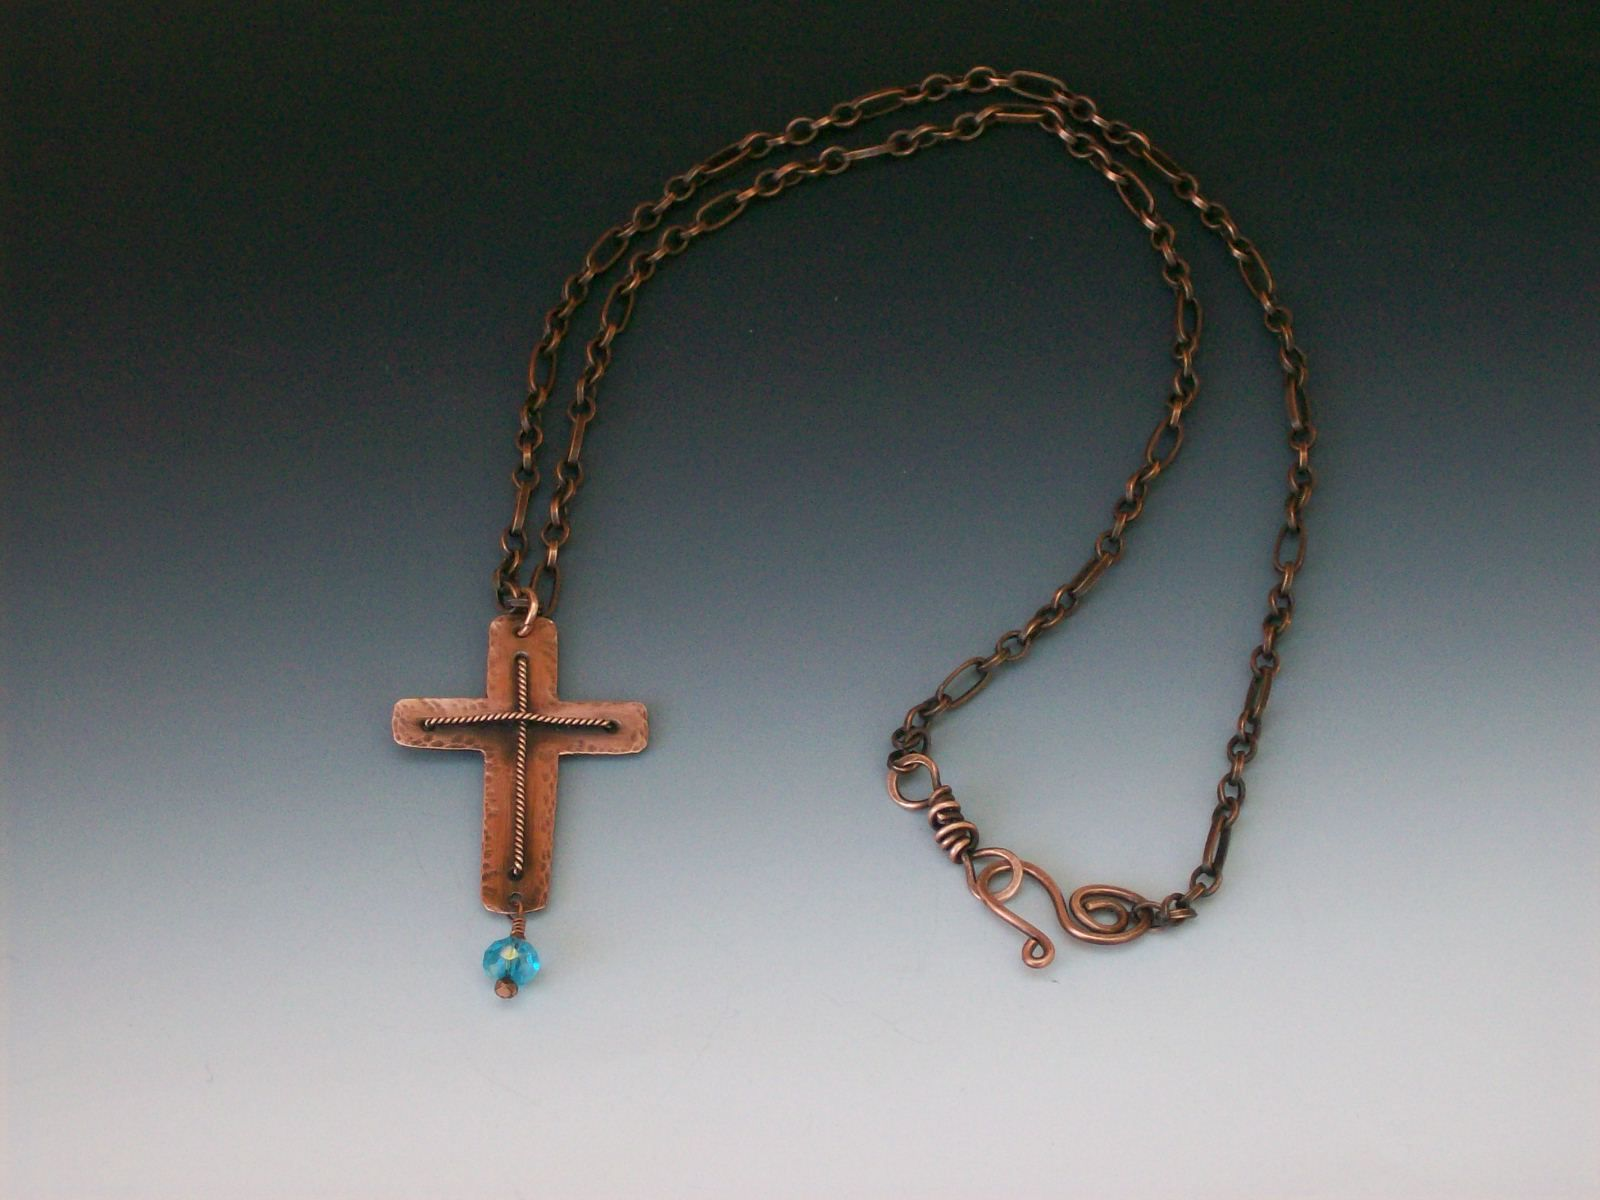 Handmade Copper Cross Necklace made from Copper sheet metal and ...